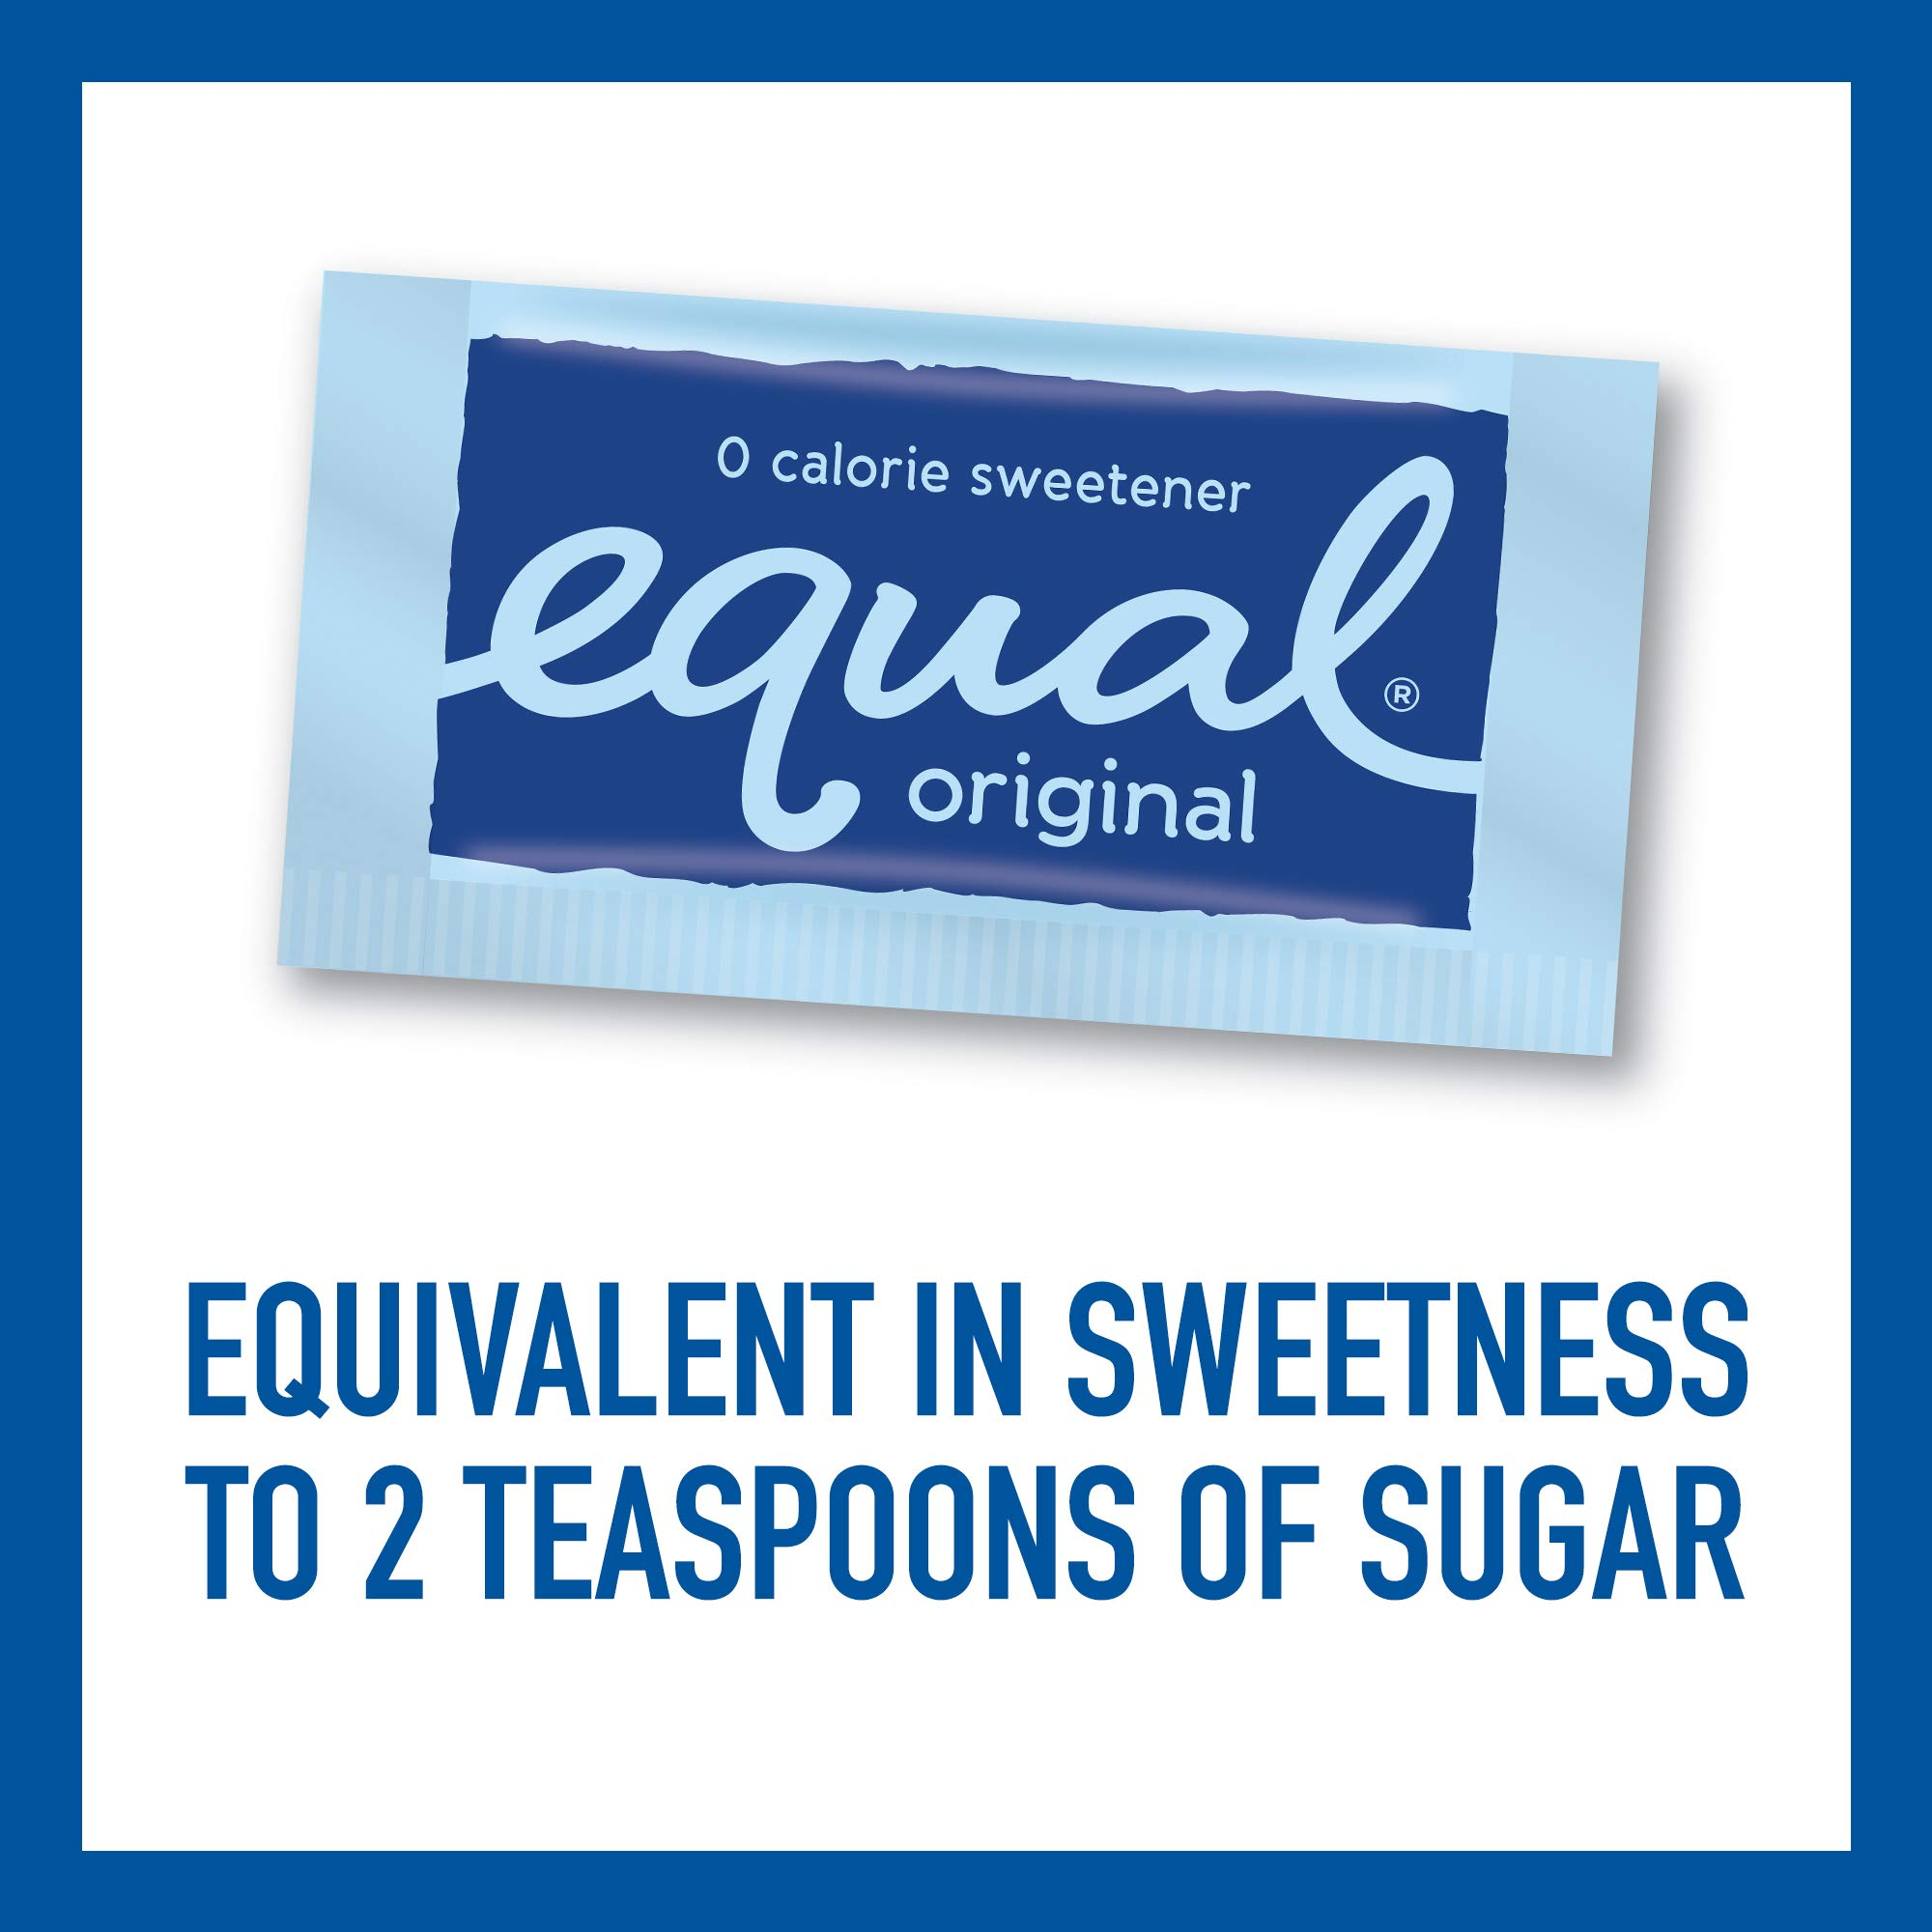 EQUAL 0 Calorie Sweetener, Sugar Substitute, Zero Calorie Sugar Alternative Sweetener Packets, Sugar Alternative, 230 Count (Pack of 3) by Equal (Image #5)